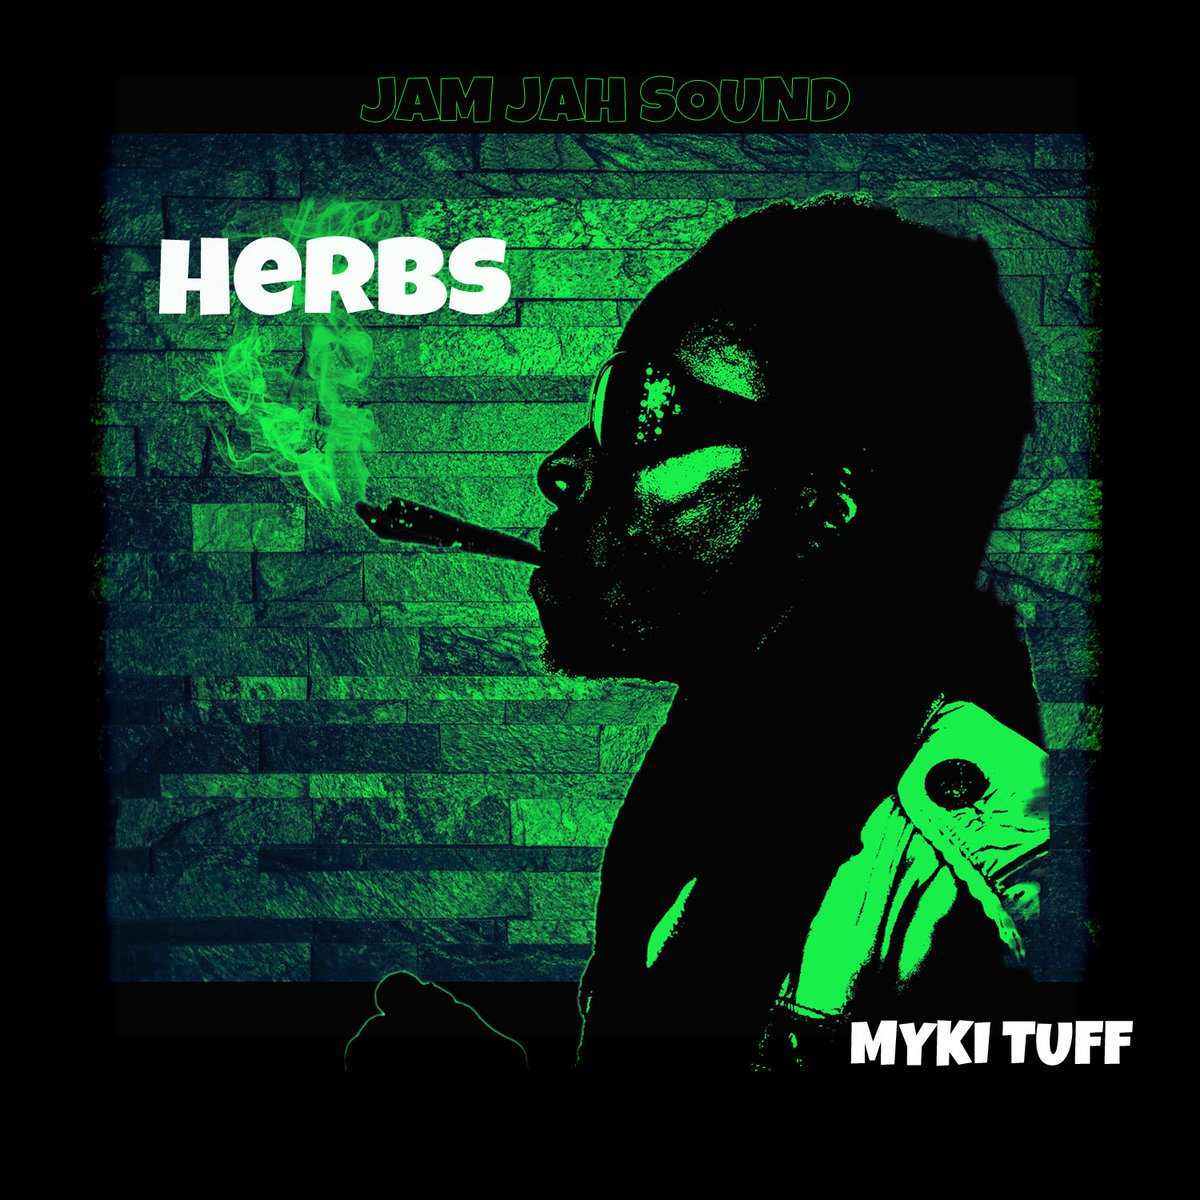 HERBS (Koffee - Toast Counteraction) FREE DOWNLOAD on 420 | Friendly